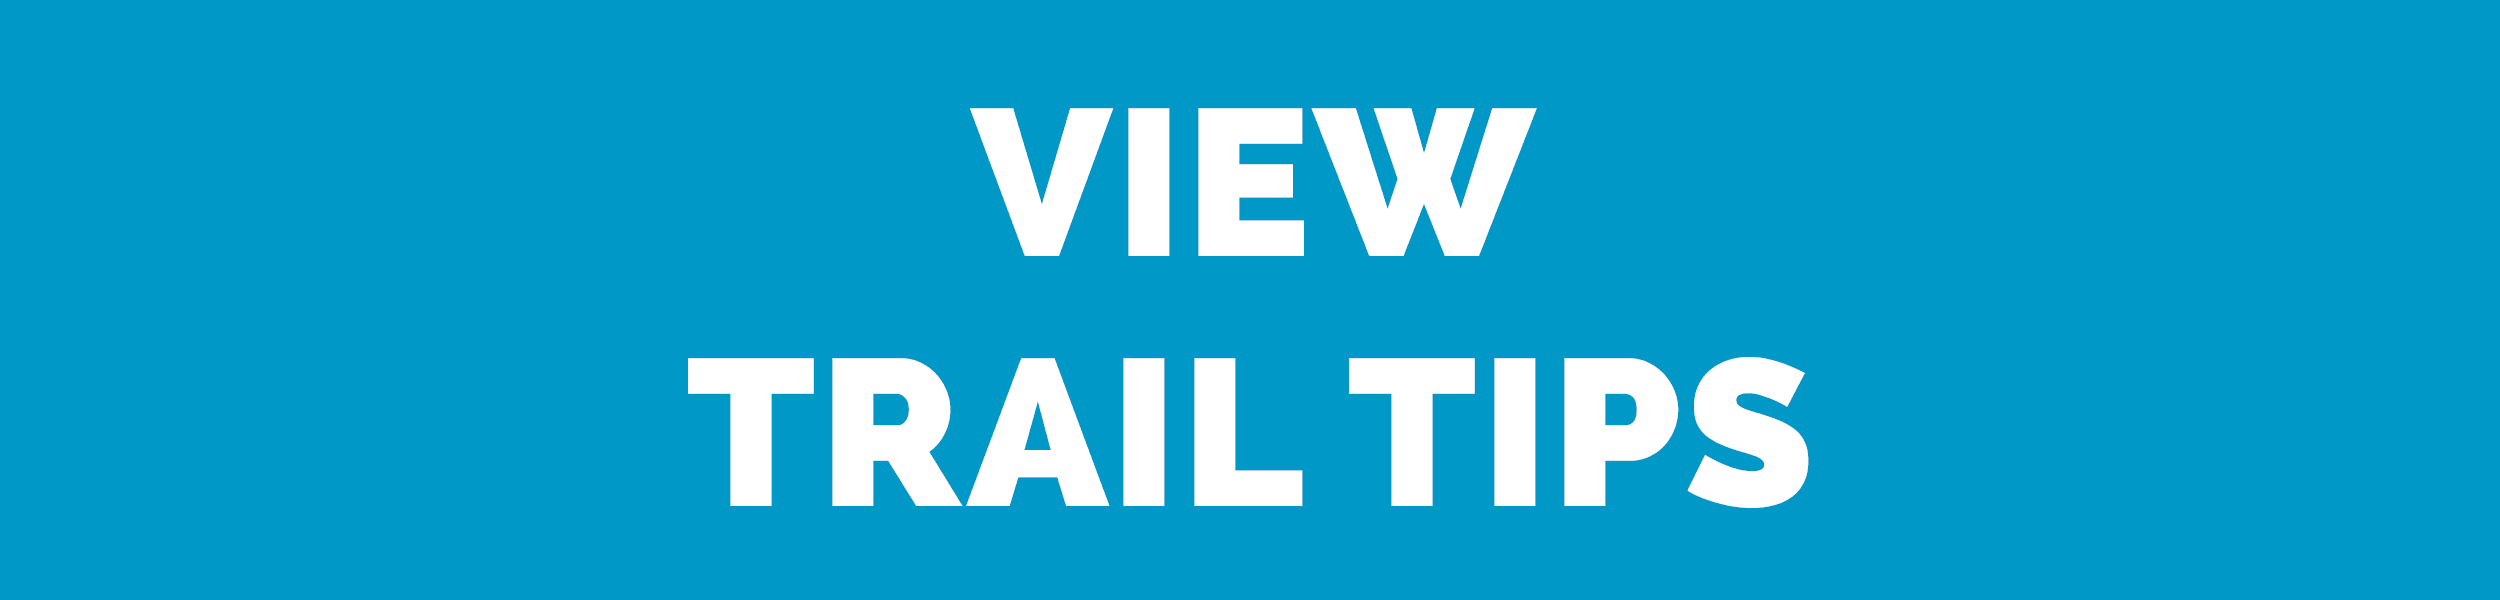 View Trail Tips Button